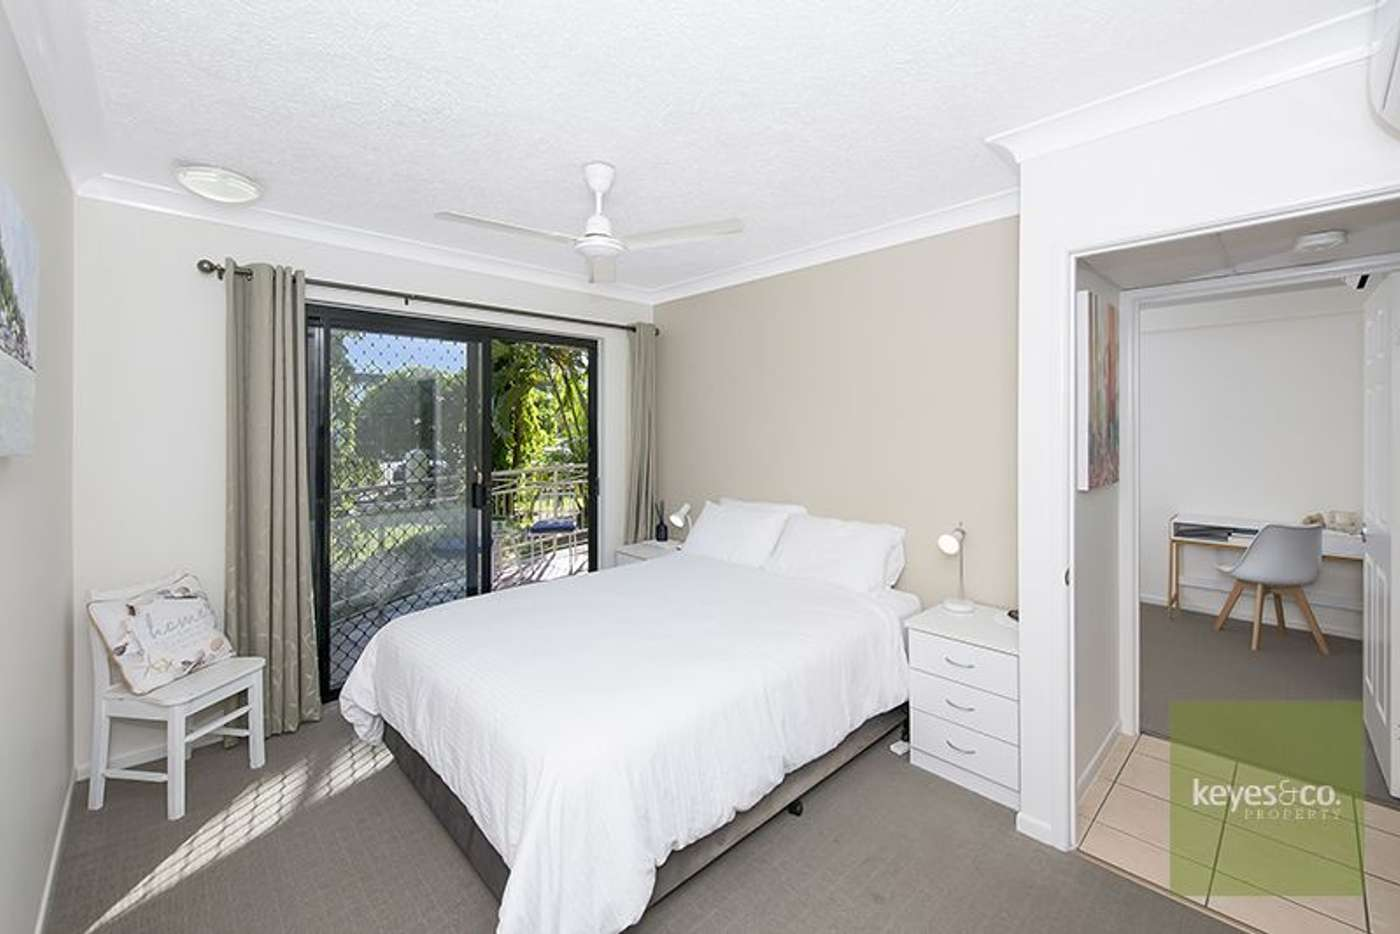 Seventh view of Homely apartment listing, 2/177-179 Mitchell Street, North Ward QLD 4810